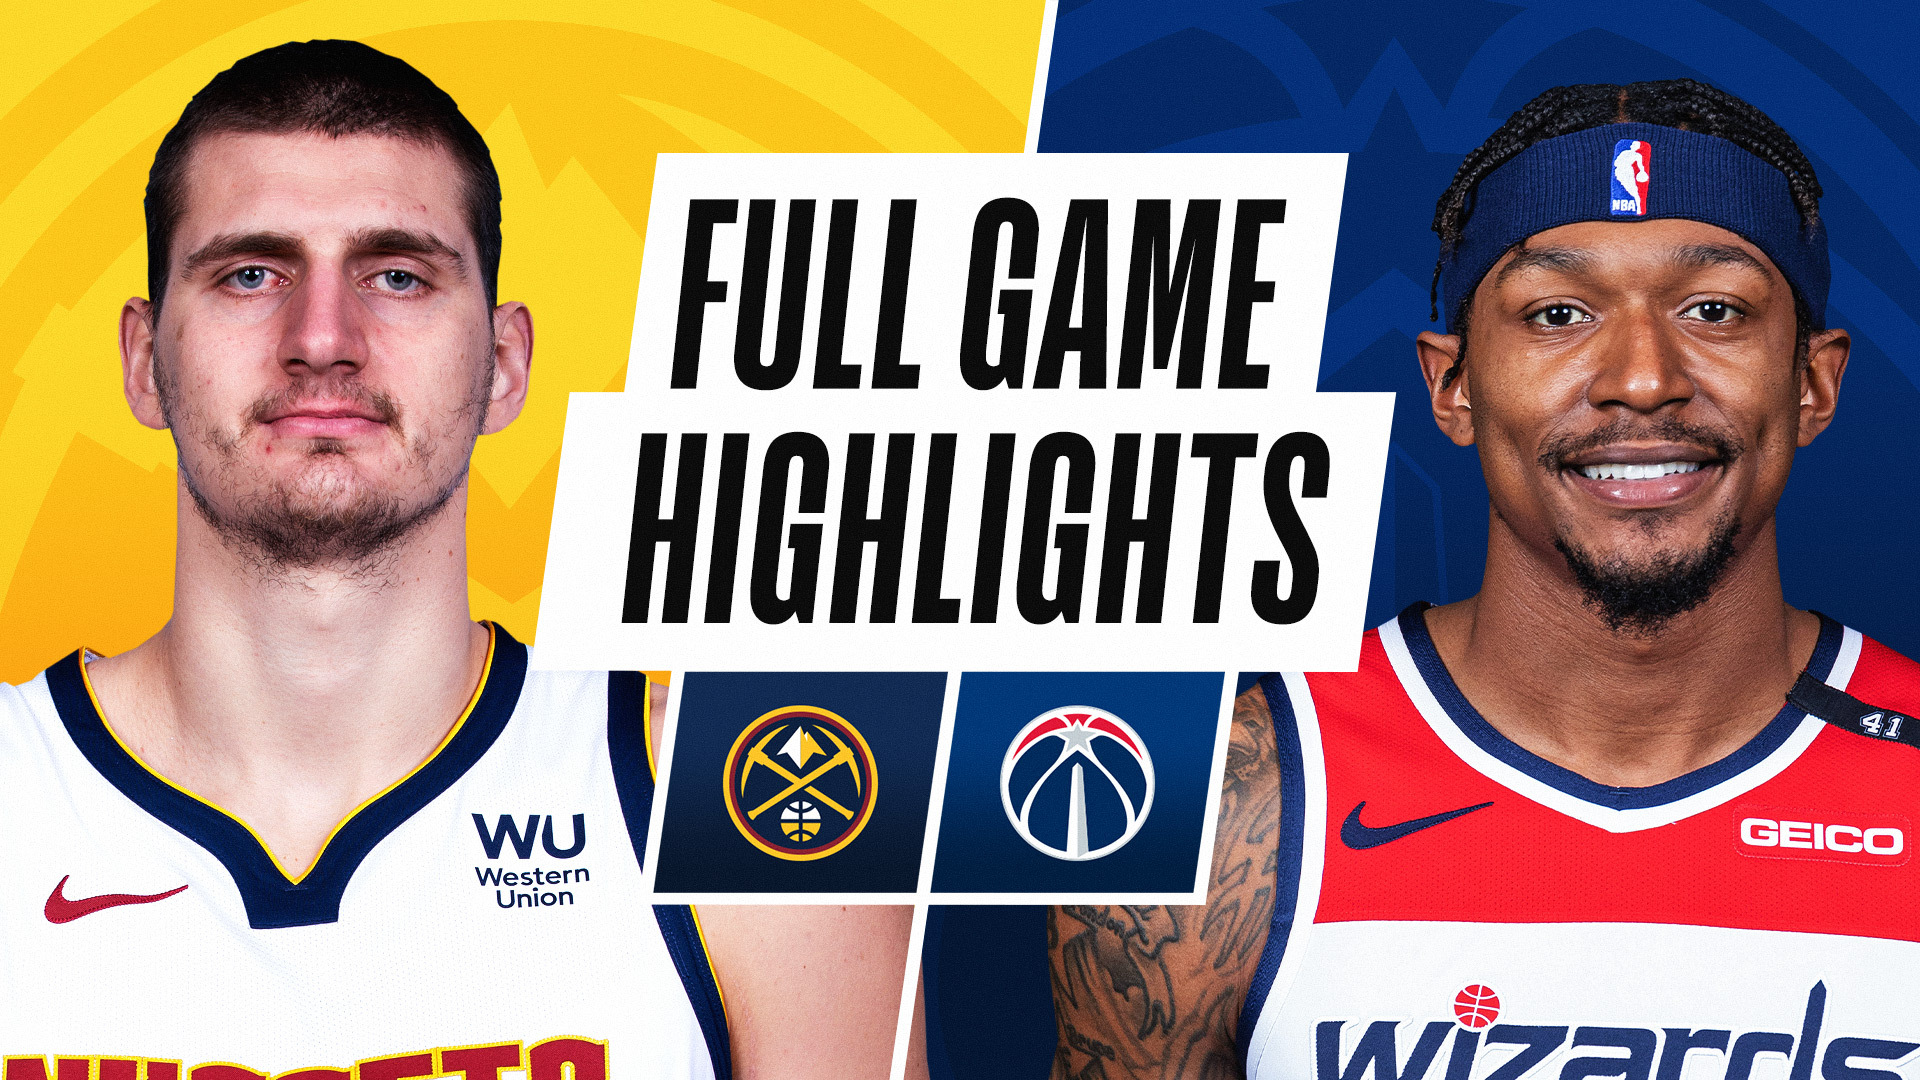 Jokic & Murray's Heroics Fall Short As Wizards Hold Off Nuggets